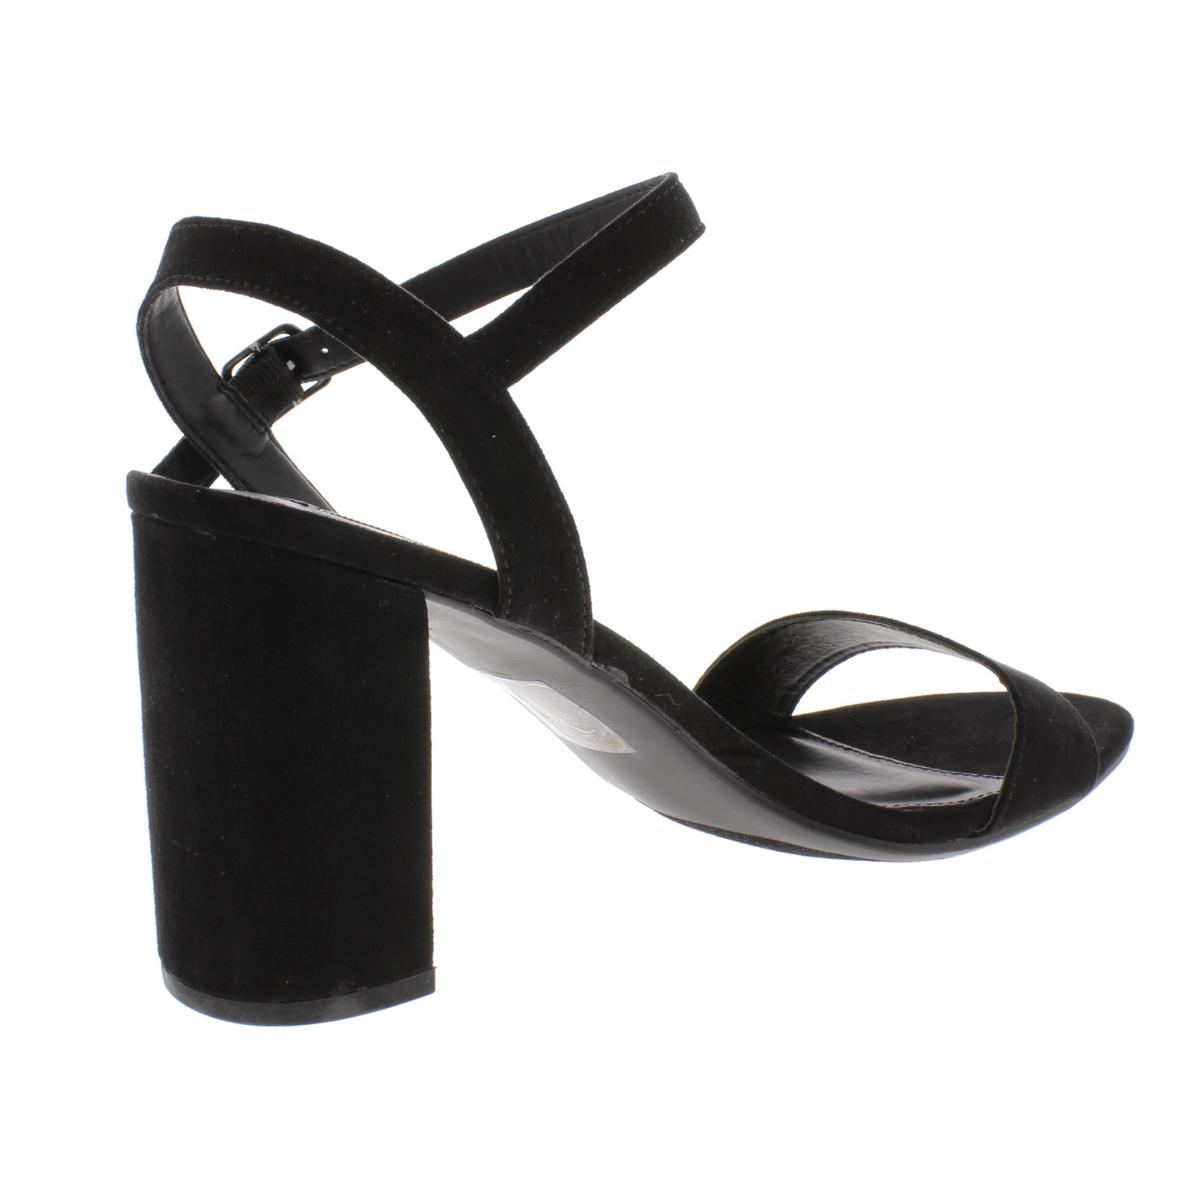 Steve-Madden-Womens-Selfish-Block-Heel-Ankle-Strap-Dress-Sandals-Shoes-BHFO-0305 thumbnail 4